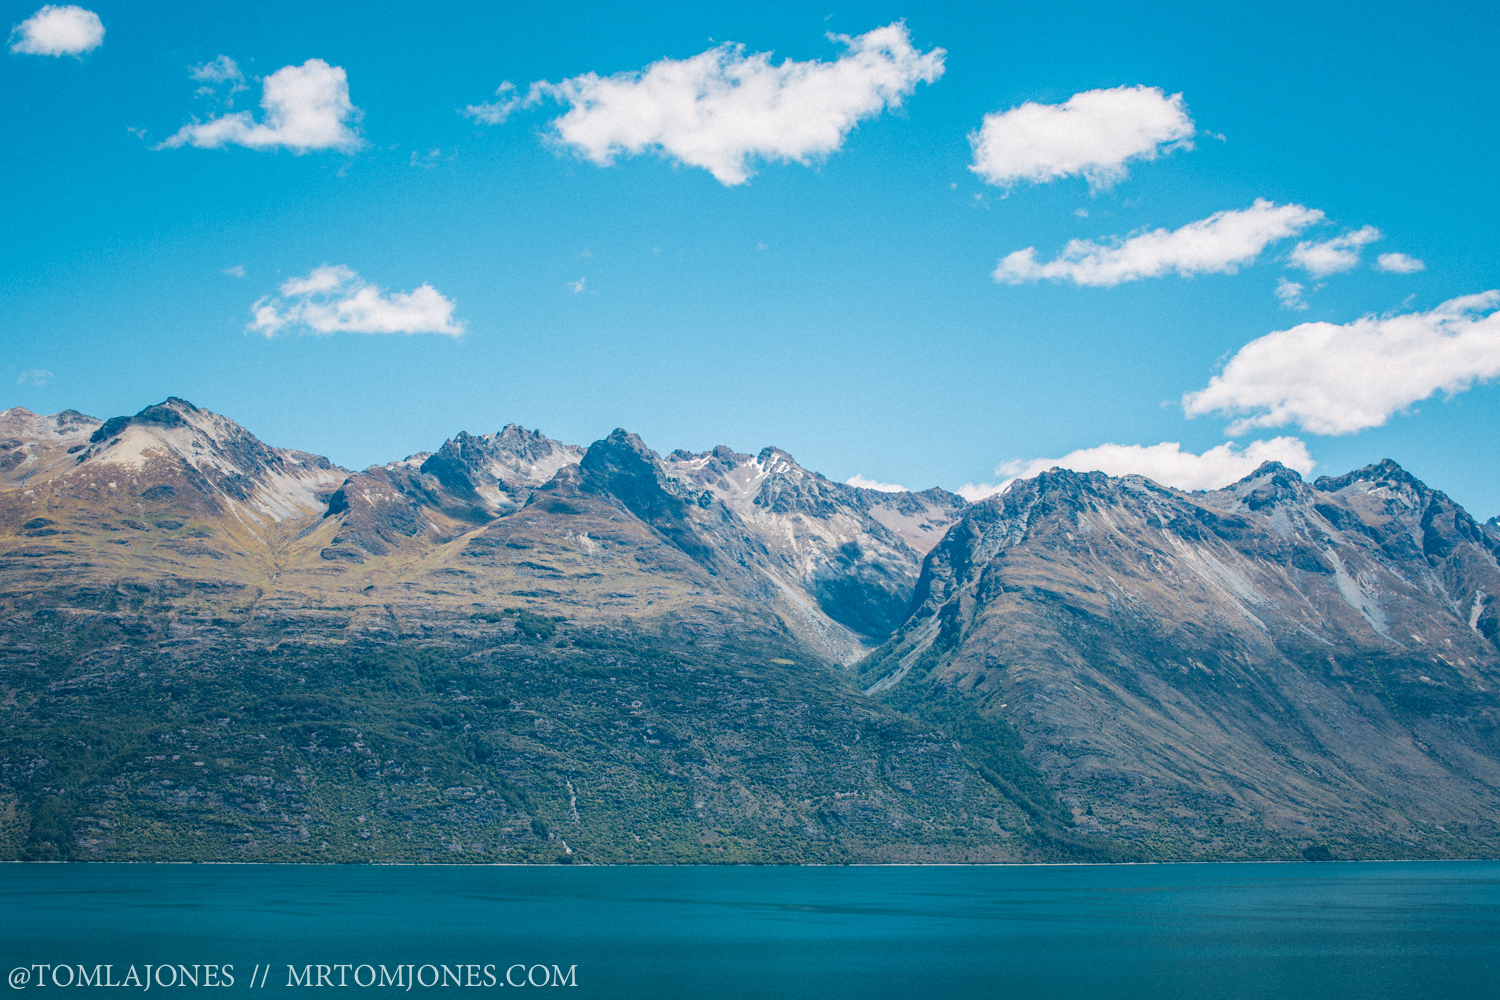 The mountains surrounding Lake Wakatipu have a strong, holding energy, standing tall and powerful.